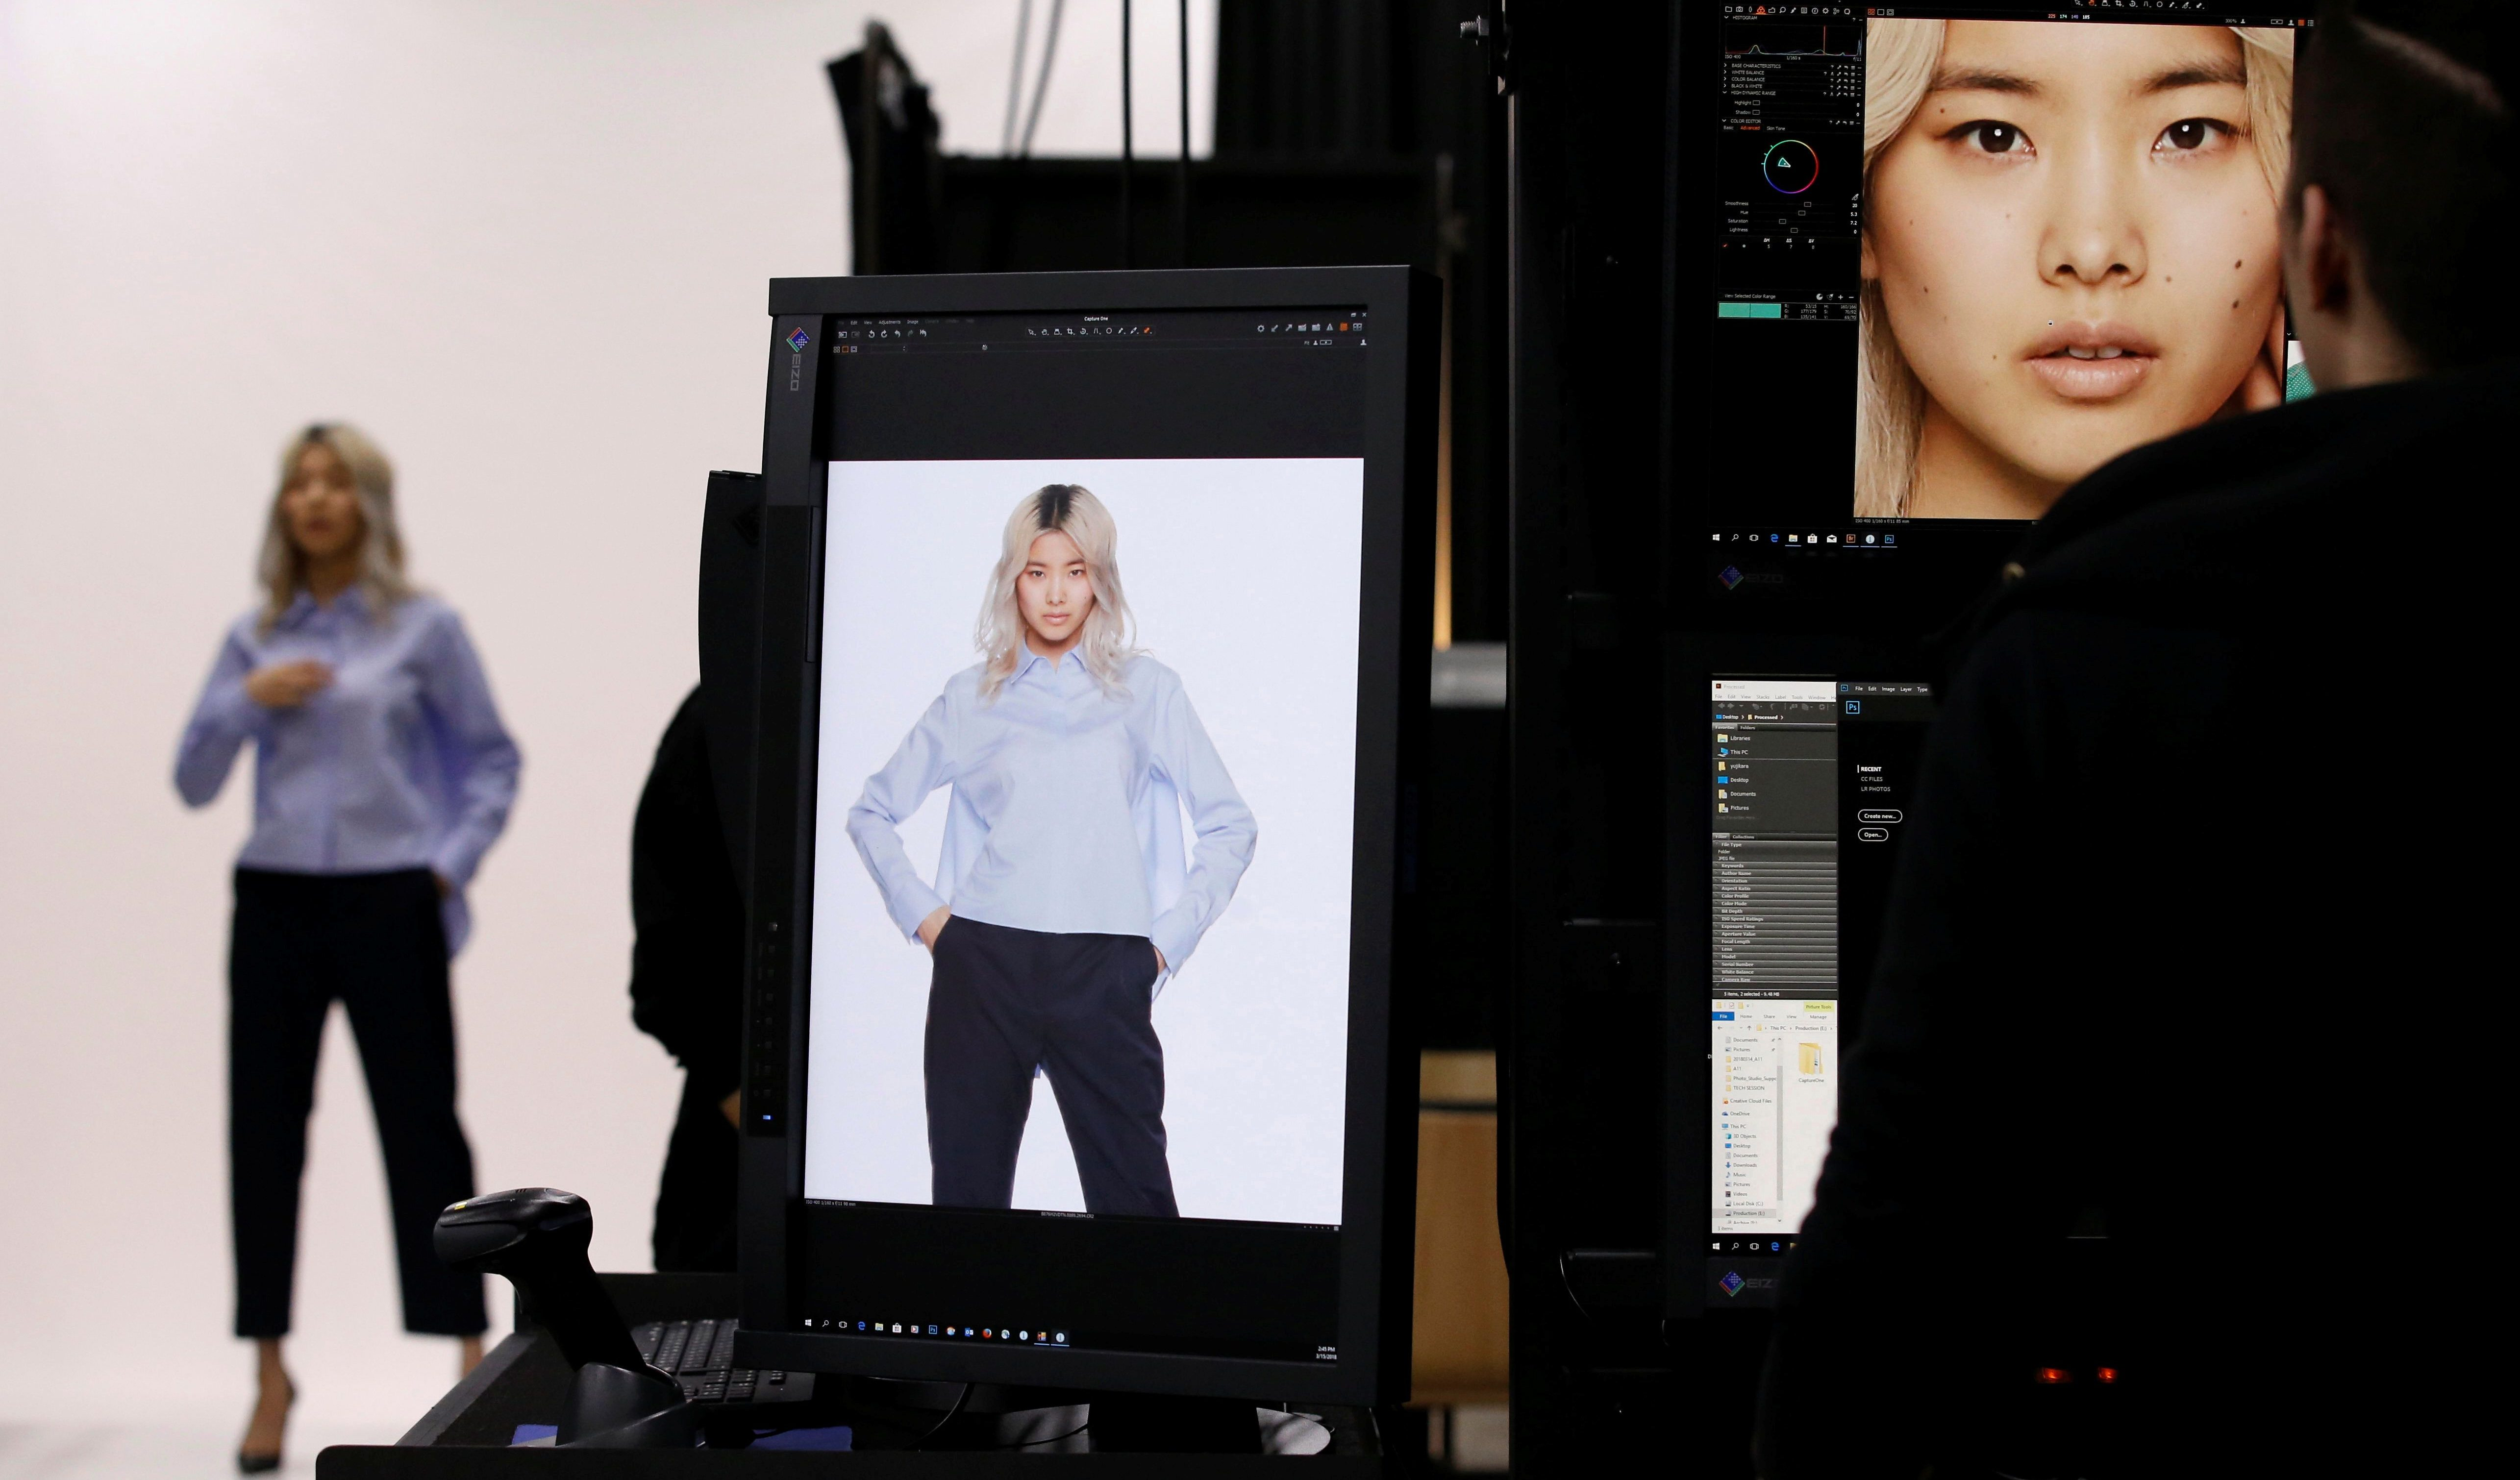 A model is seen during a shooting session for Amazon Fashion at an unveiling of its new photo studio in Tokyo, Japan March 15, 2018.  REUTERS/Toru Hanai - RC11C1FABC40